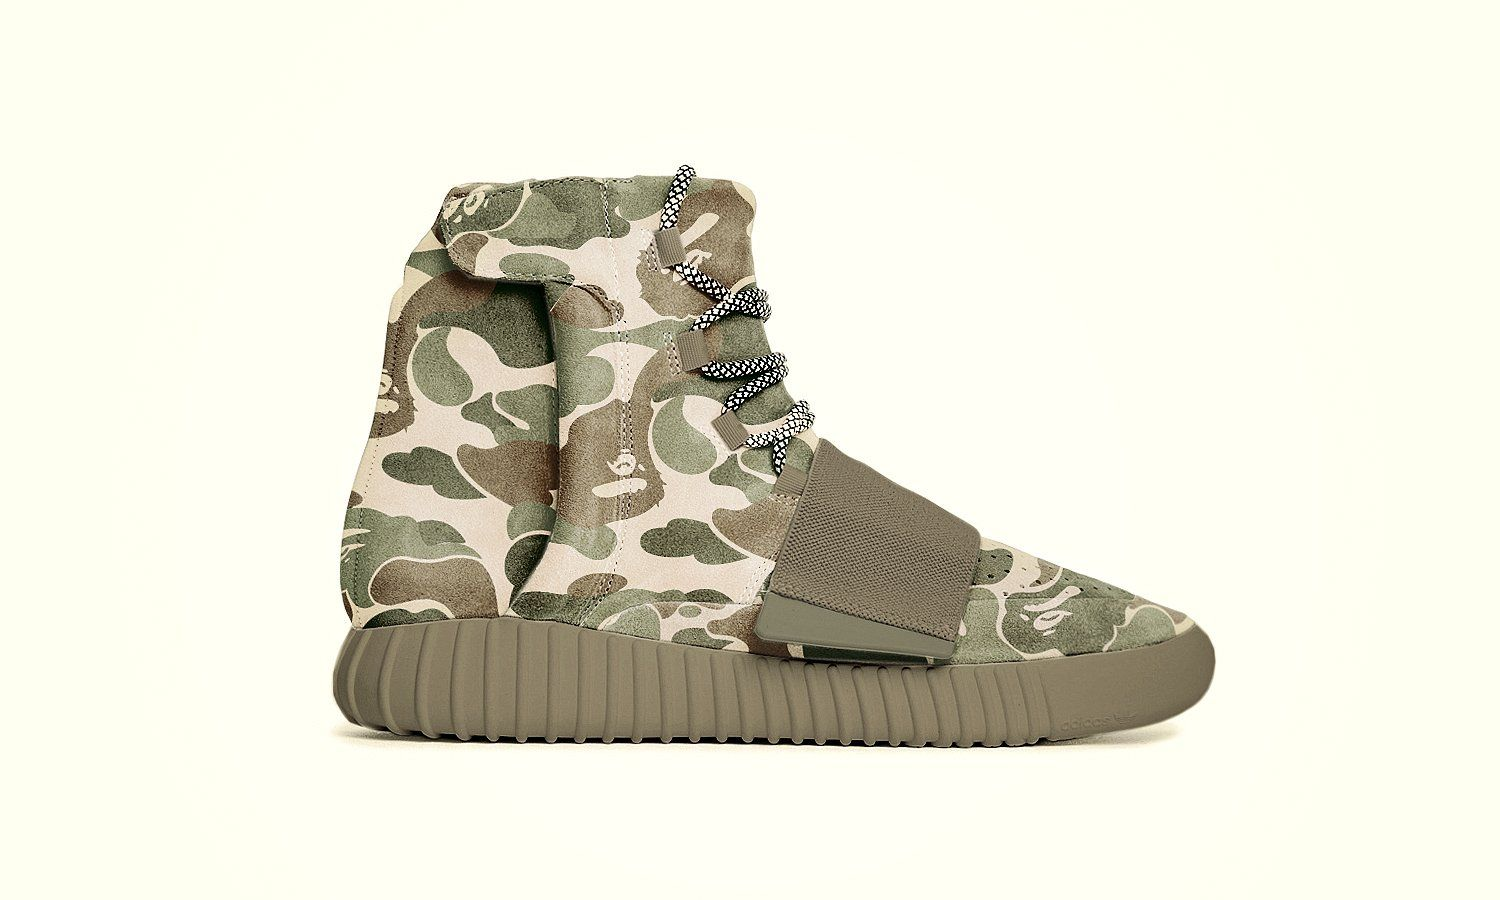 adidas yeezy boost 750 price in india adidas shoes women gazelle pink